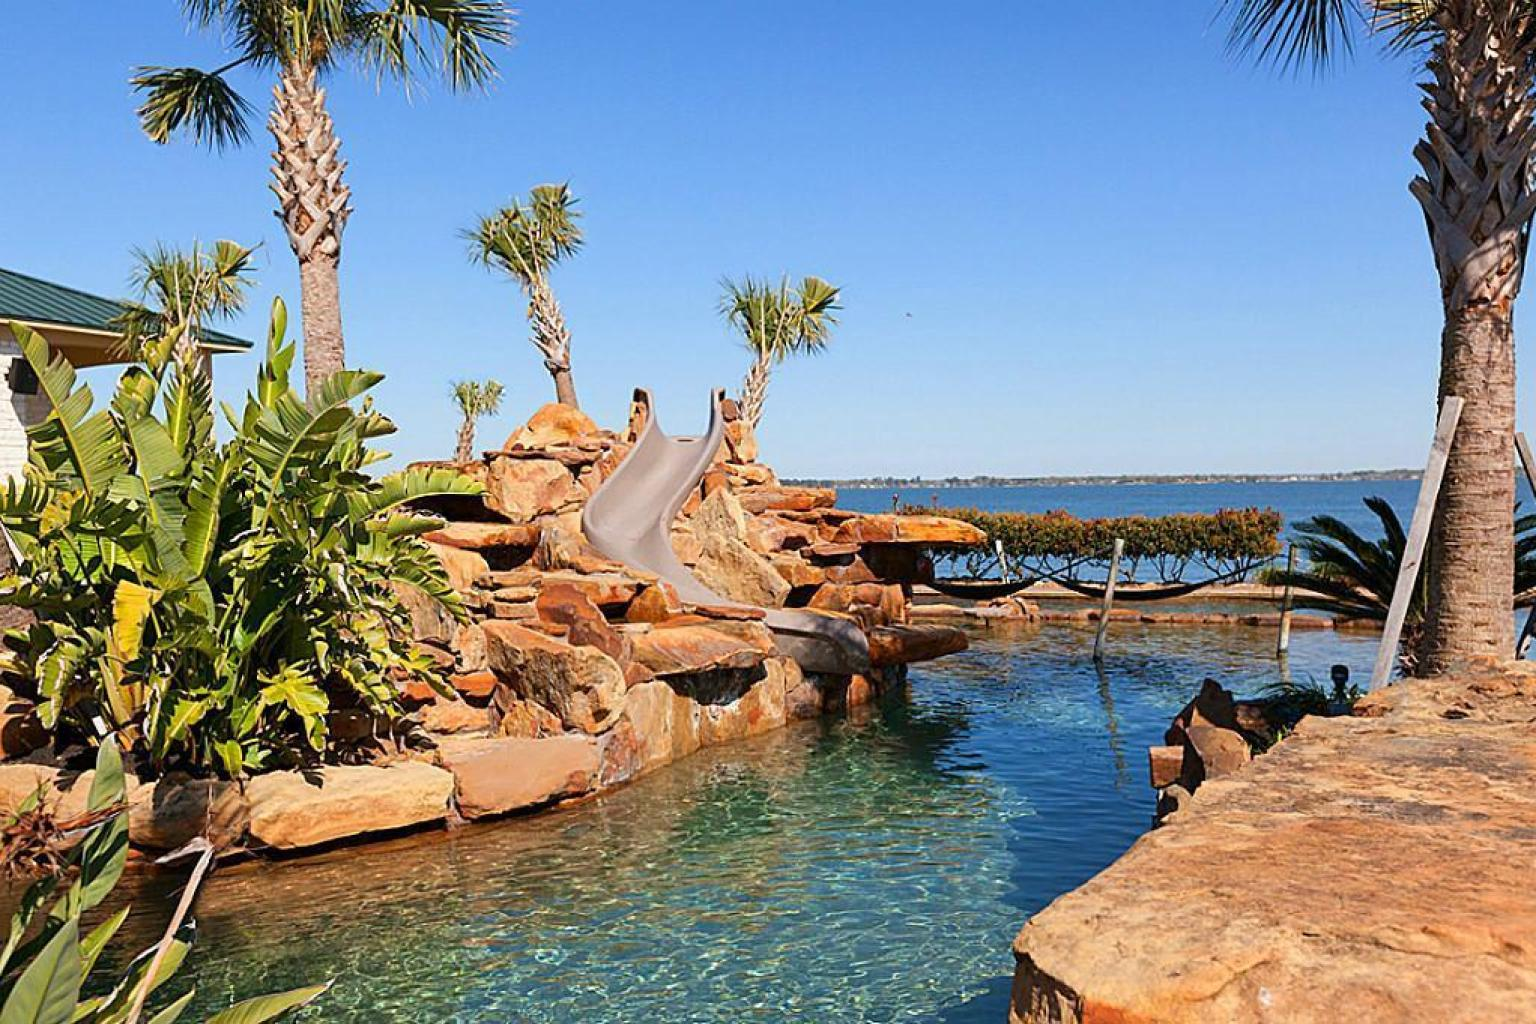 Inground Pools With Waterslides 6 epic water slides that make a lavish swimming pool even better